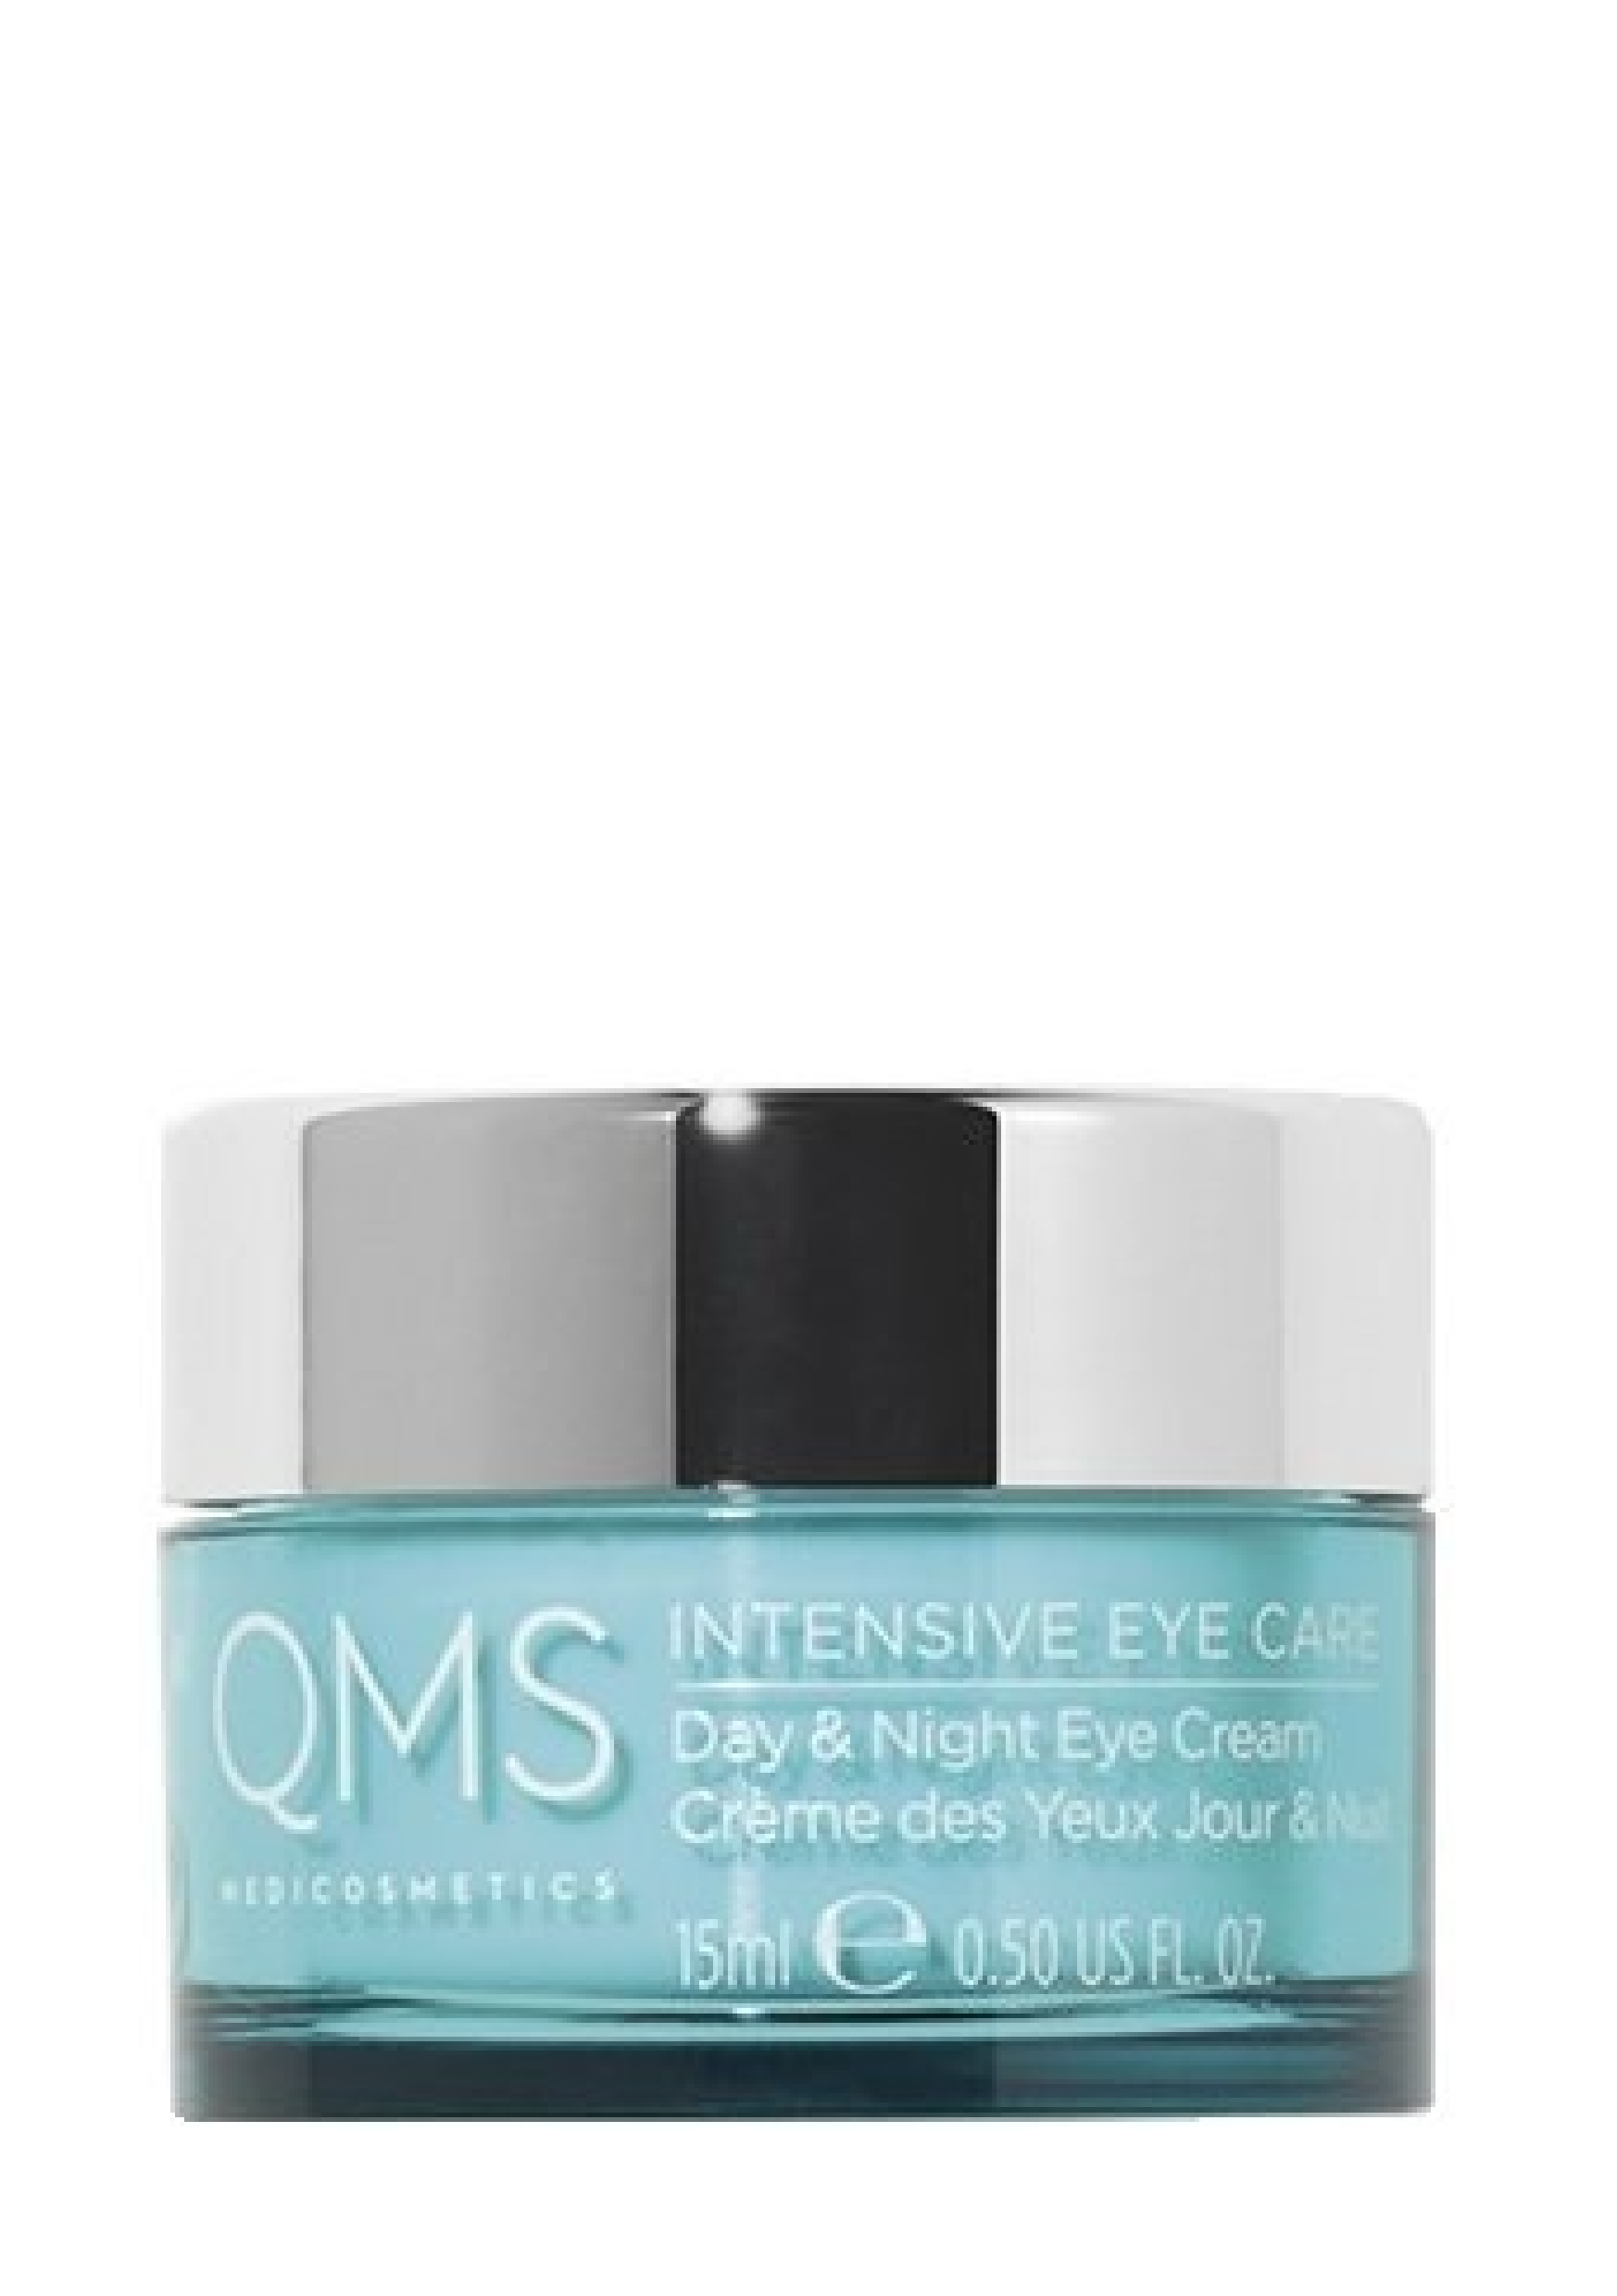 QMS®Intensive Eye care Day & Night Eye Cream